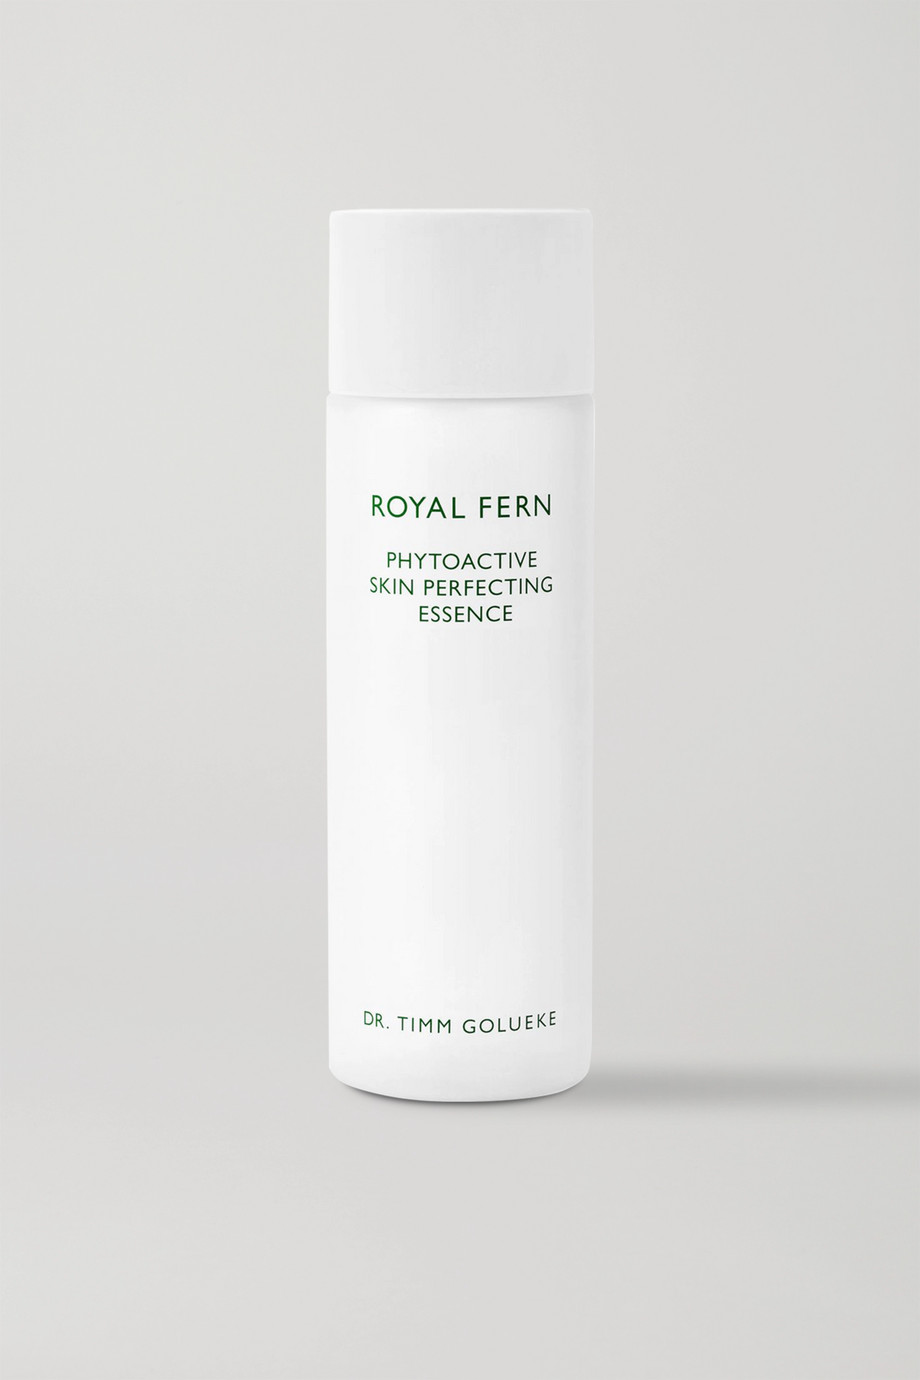 ROYAL FERN Phytoactive Skin Perfecting Essence, 200ml